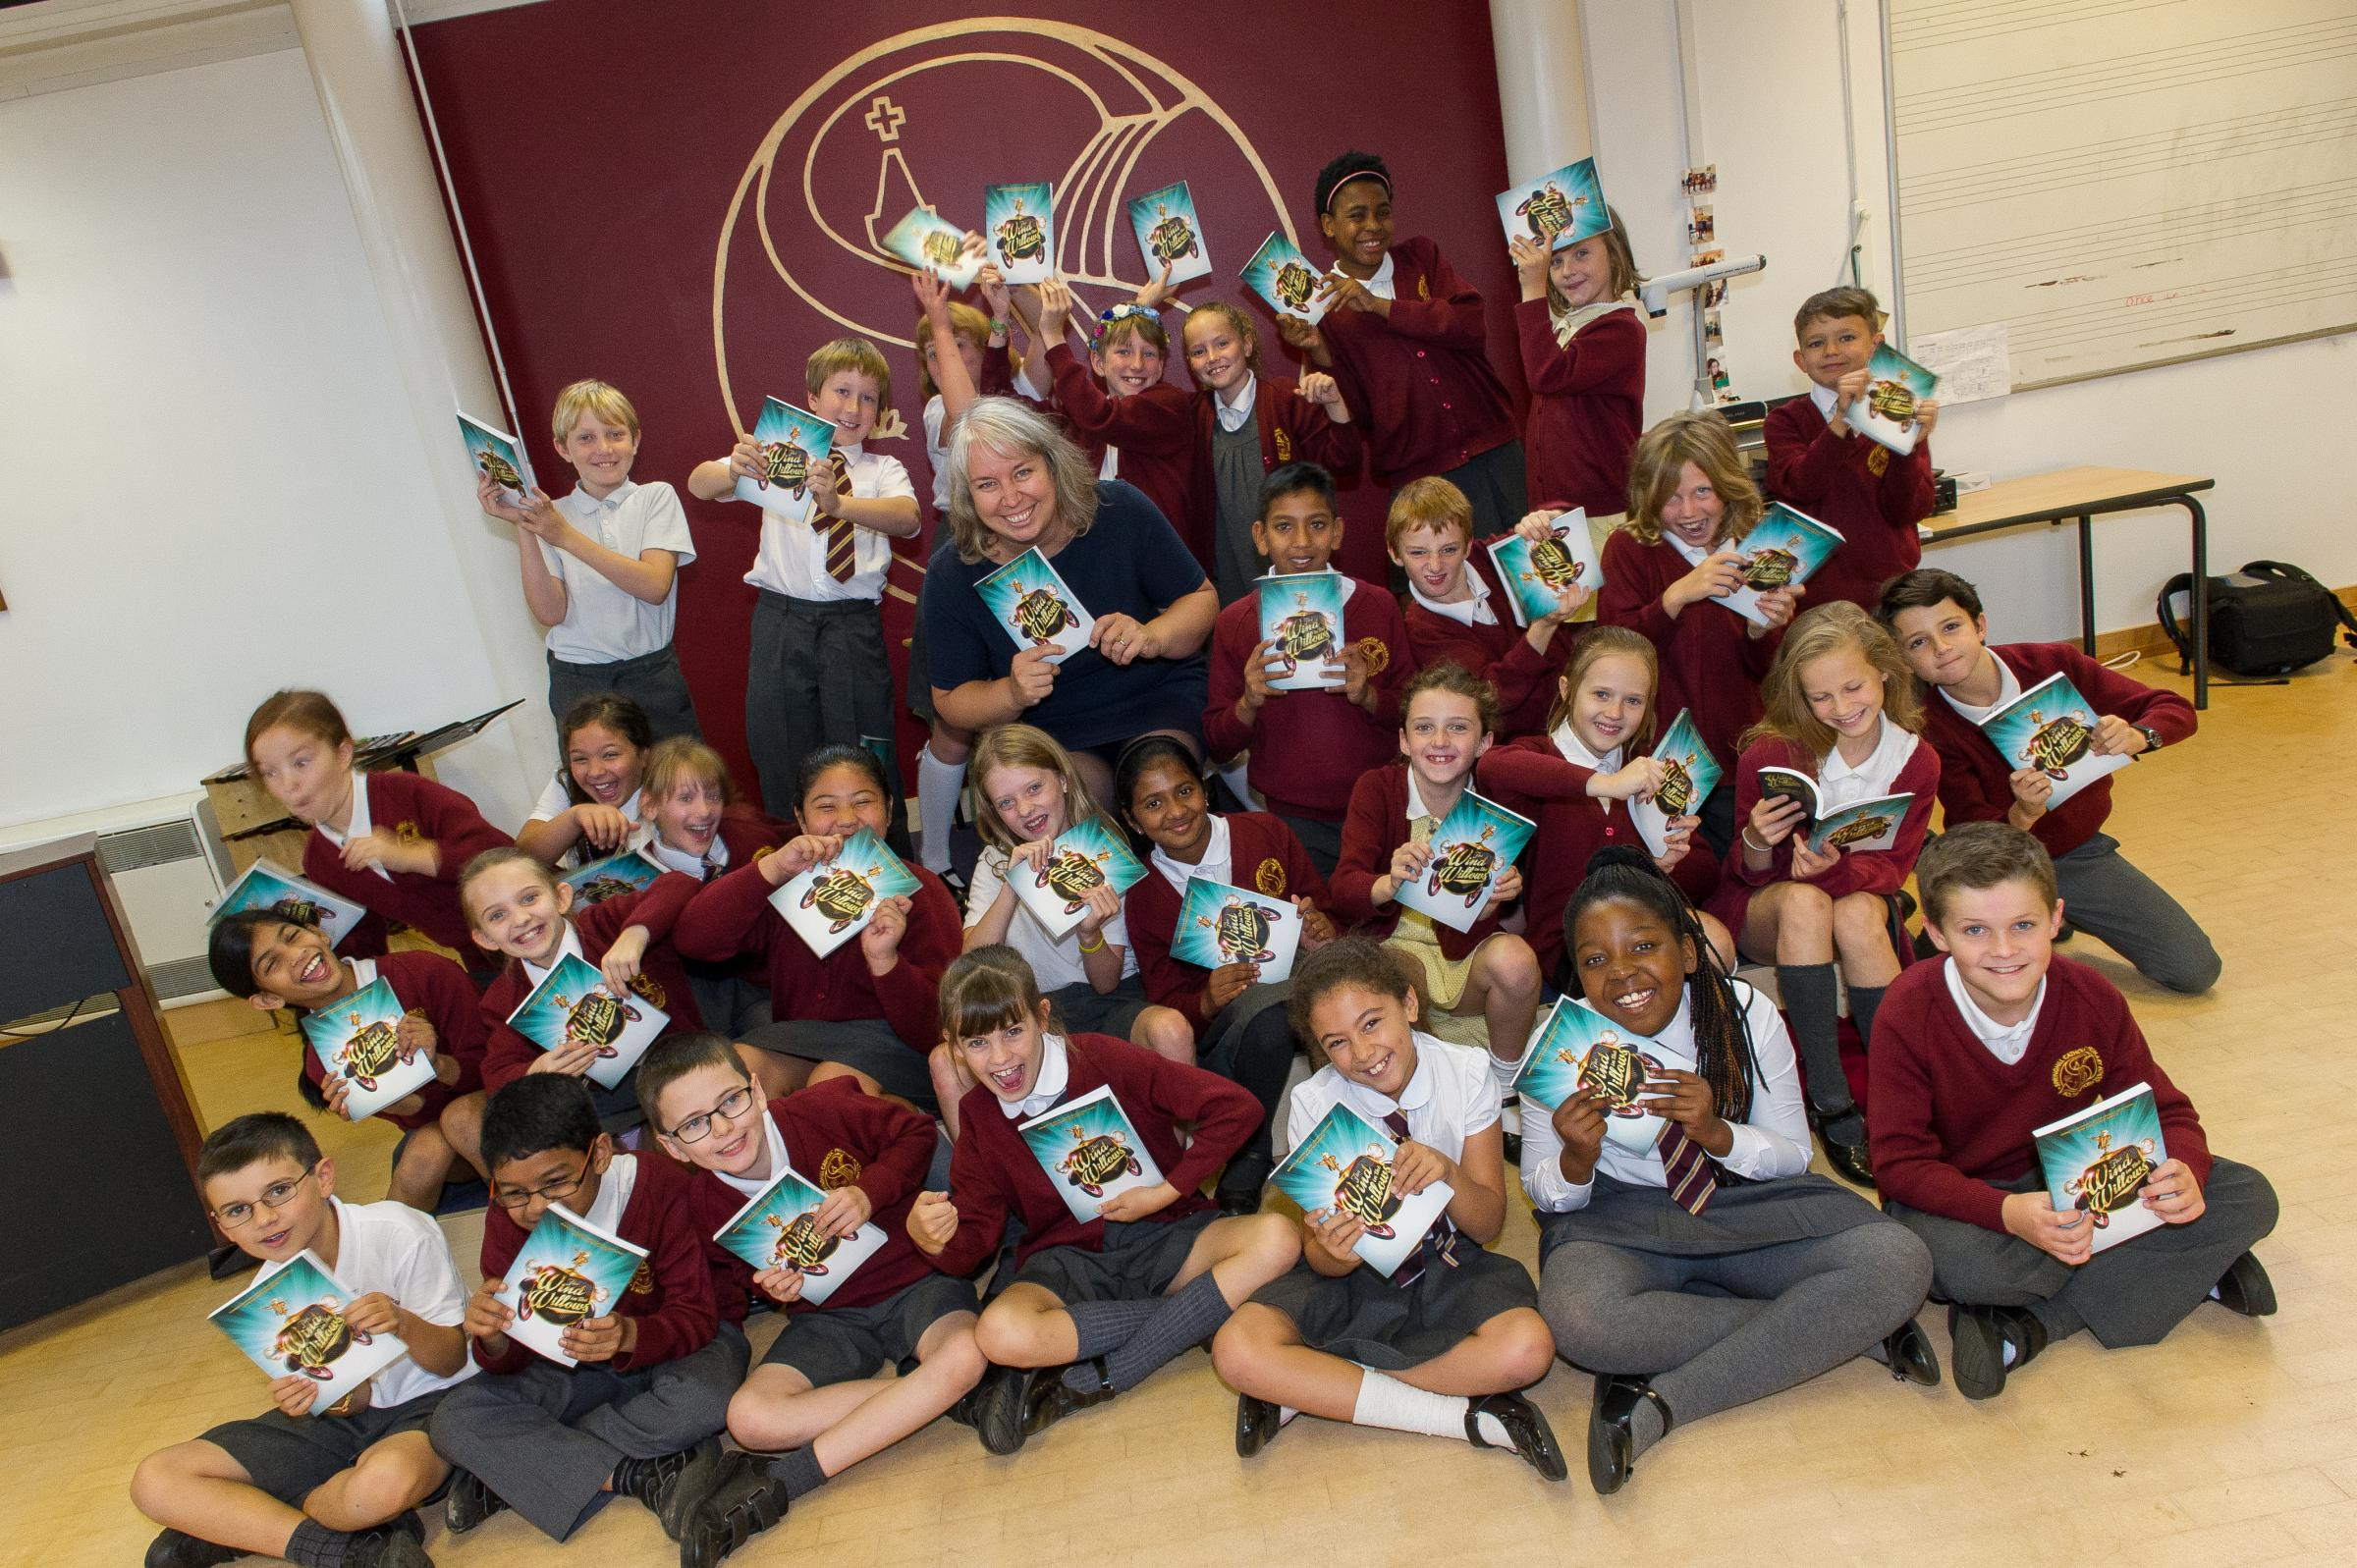 Springhill school Yr 5 children with copies of The Wind in the Willows